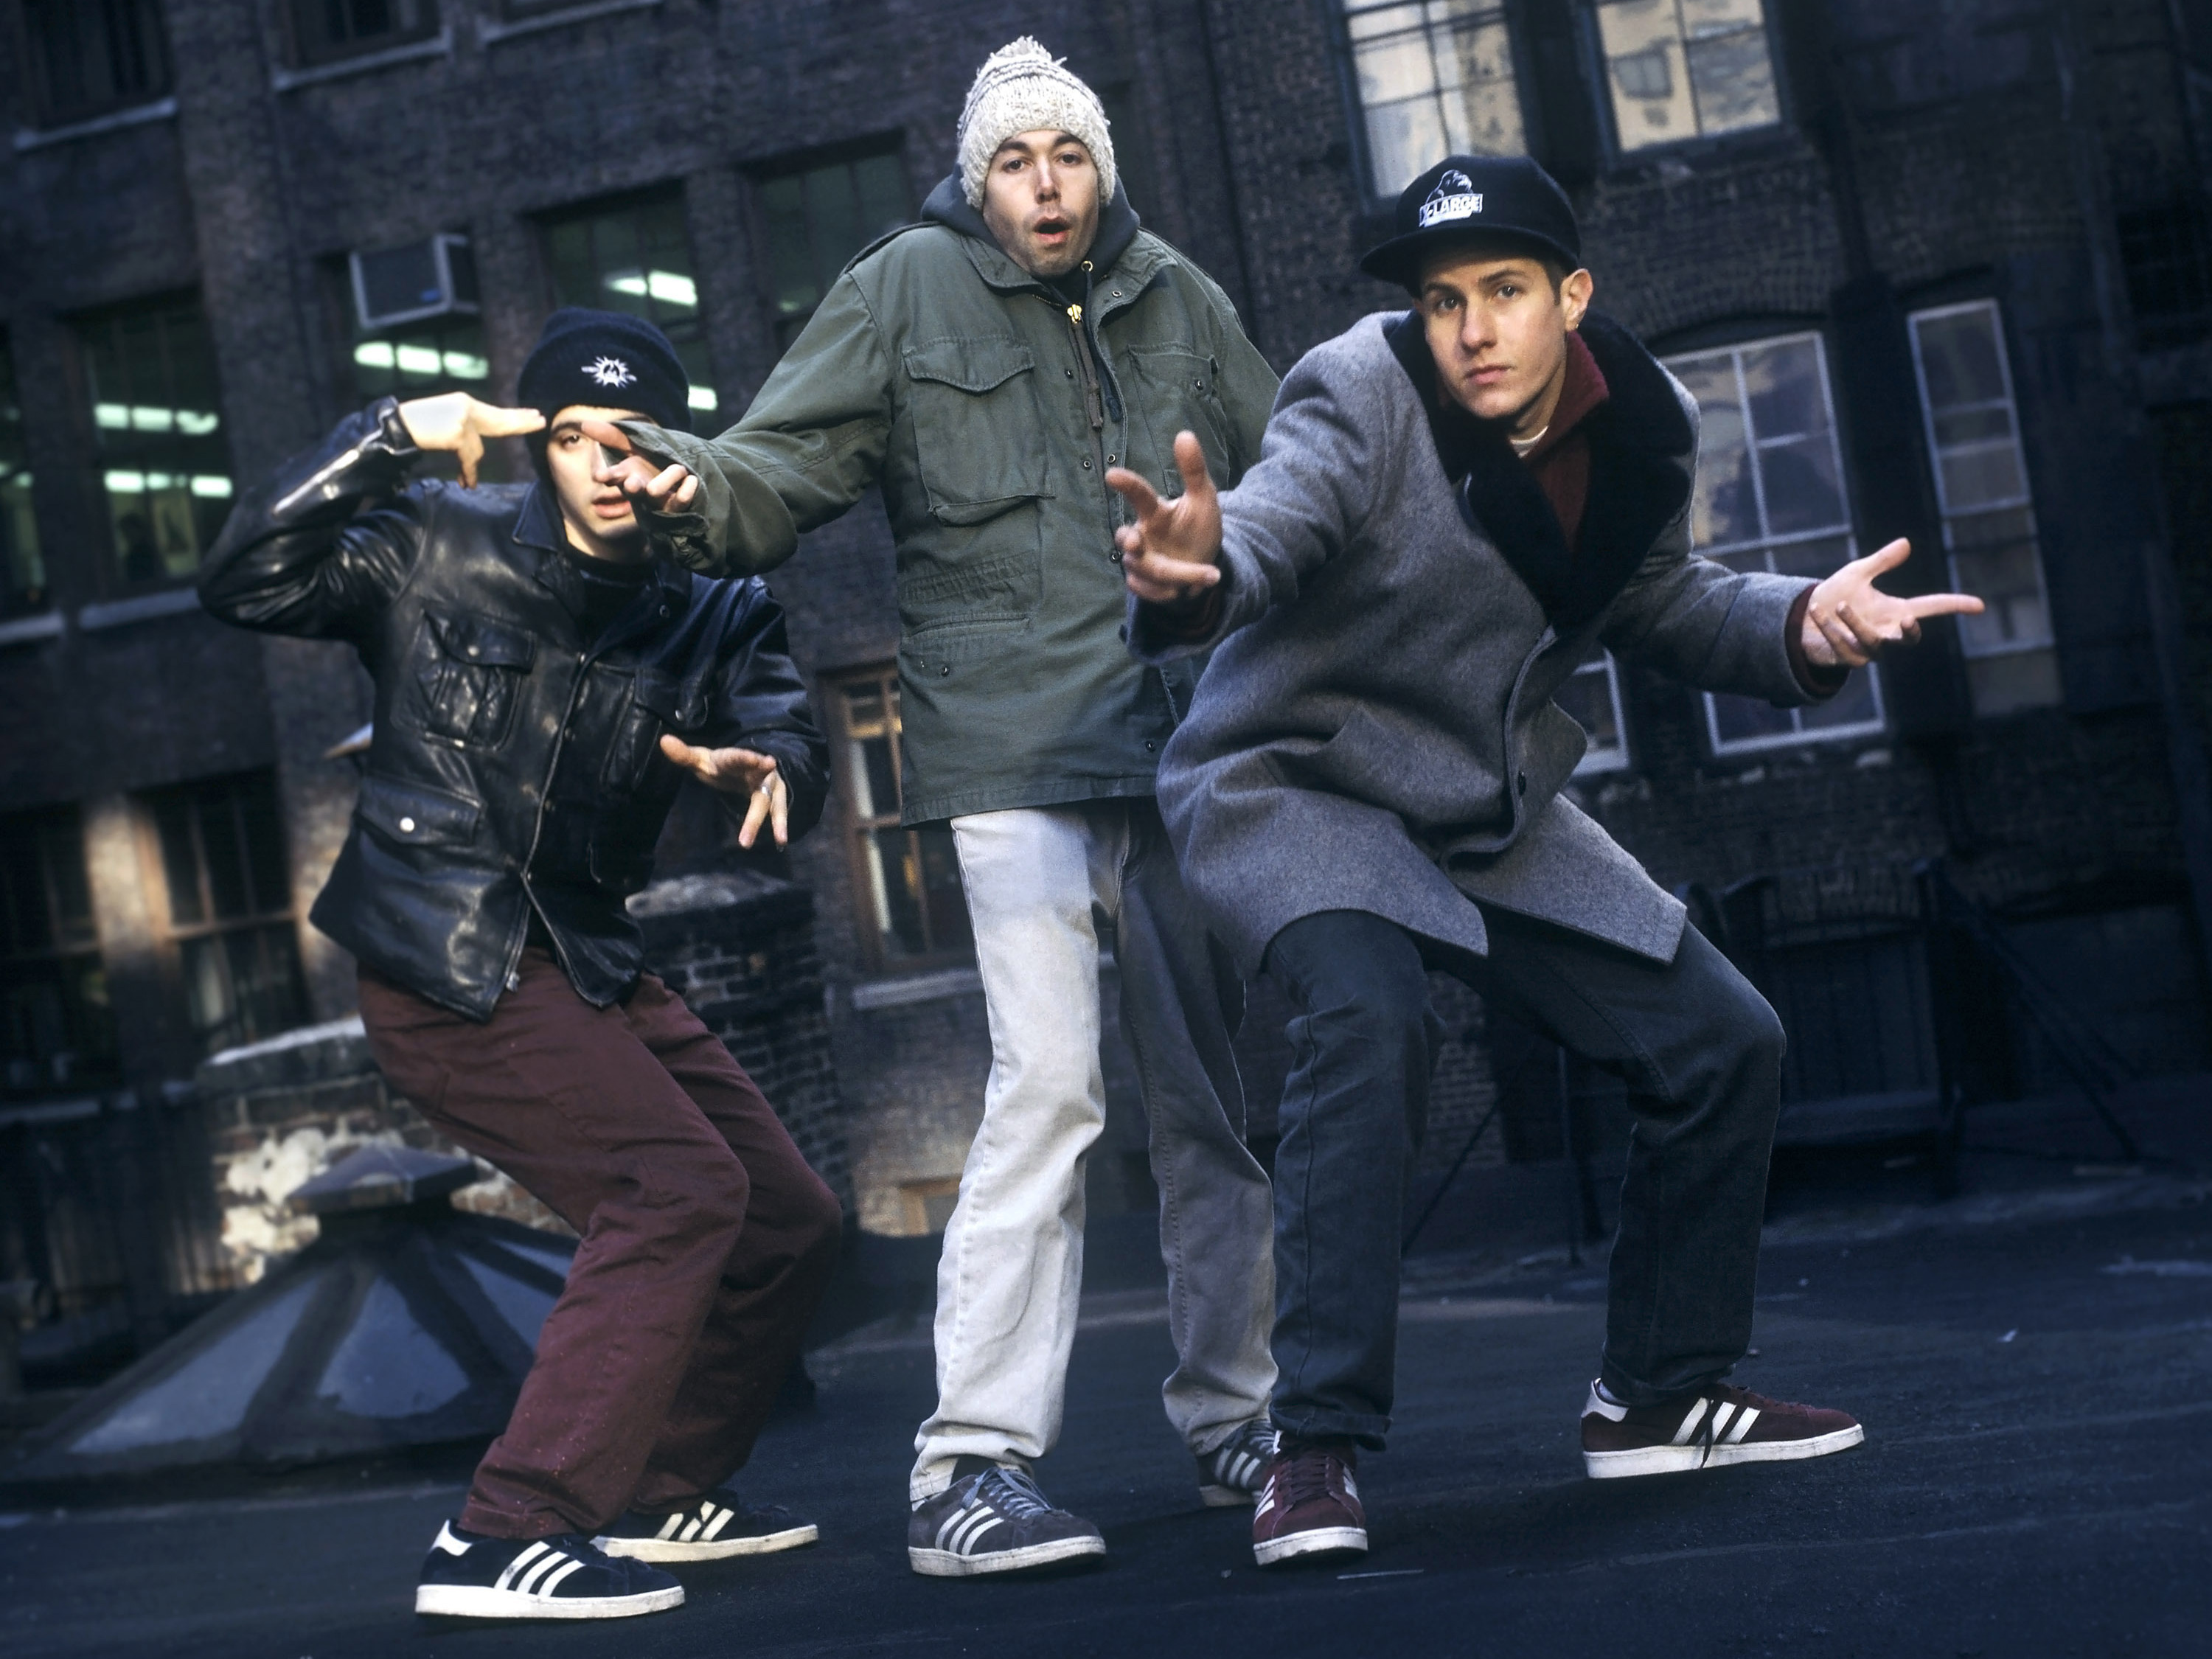 Ad-Rock (Adam Horovitz), MCA (Adam Yauch) and Mike D (Mike Diamond) of the Beastie Boys pose on a rooftop in New York City in 1994.